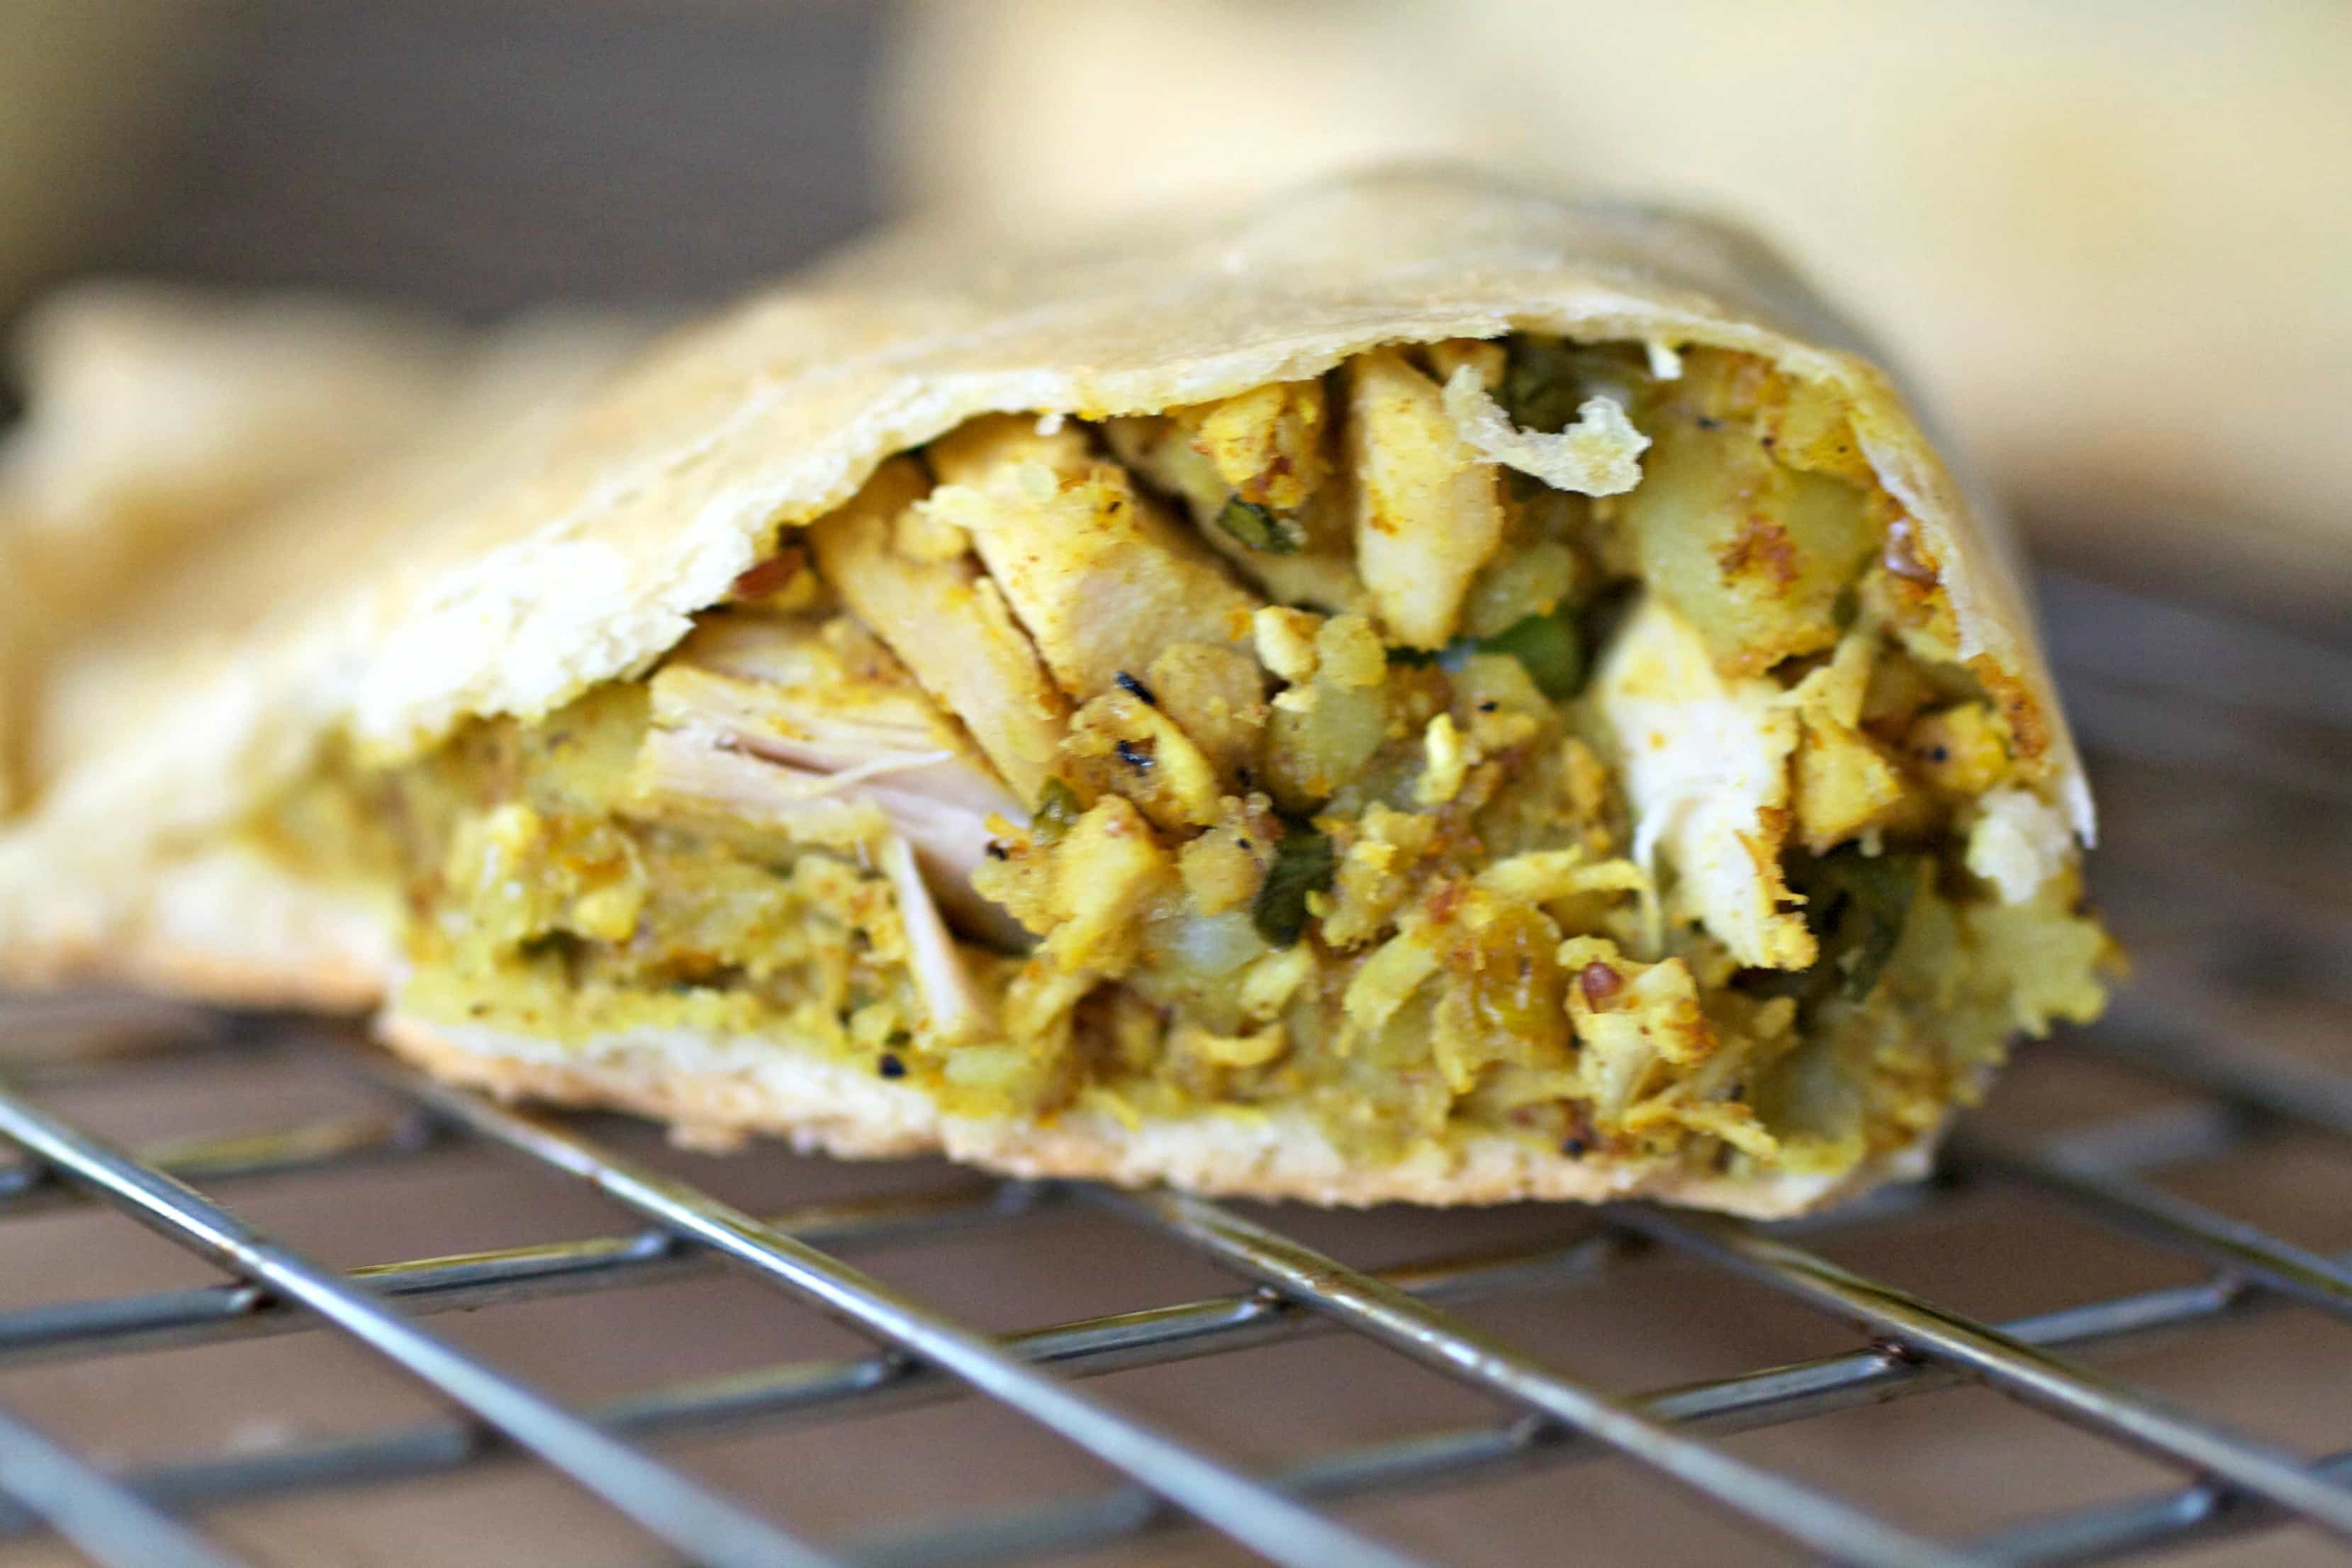 A hand pie cut in half showing the inside with curried turkey filling